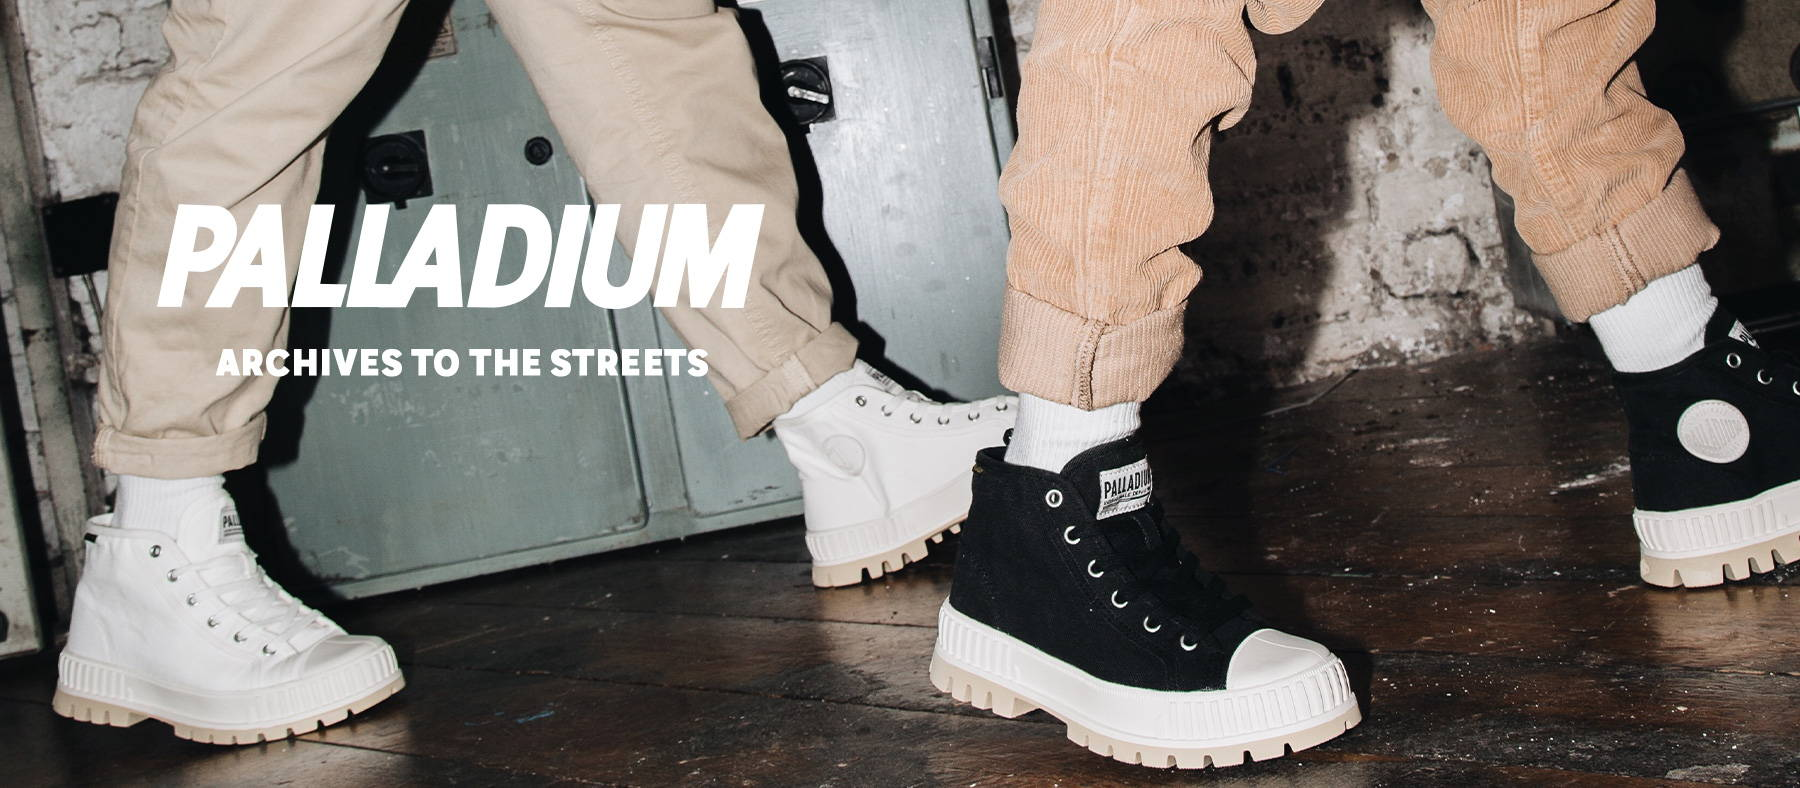 Palladium Archives to the Streets